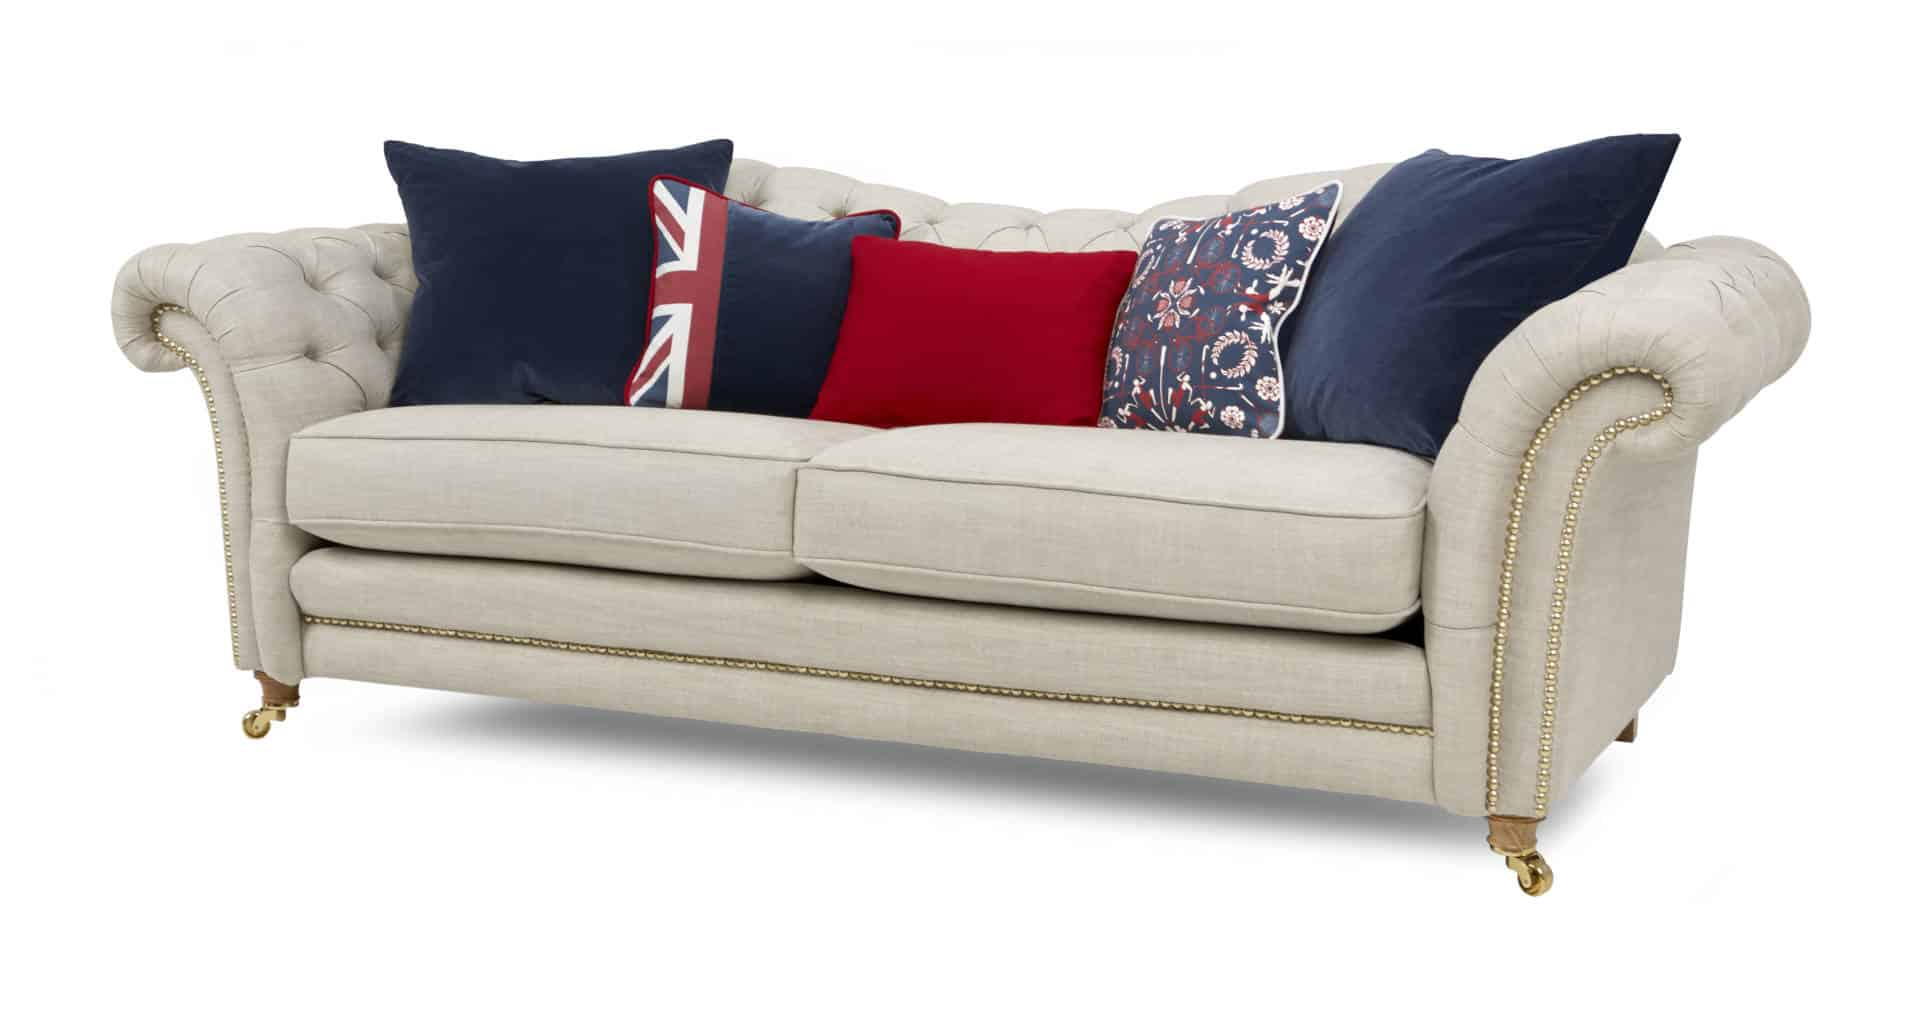 The team gb sofa a beautiful space for Couch gb sofa